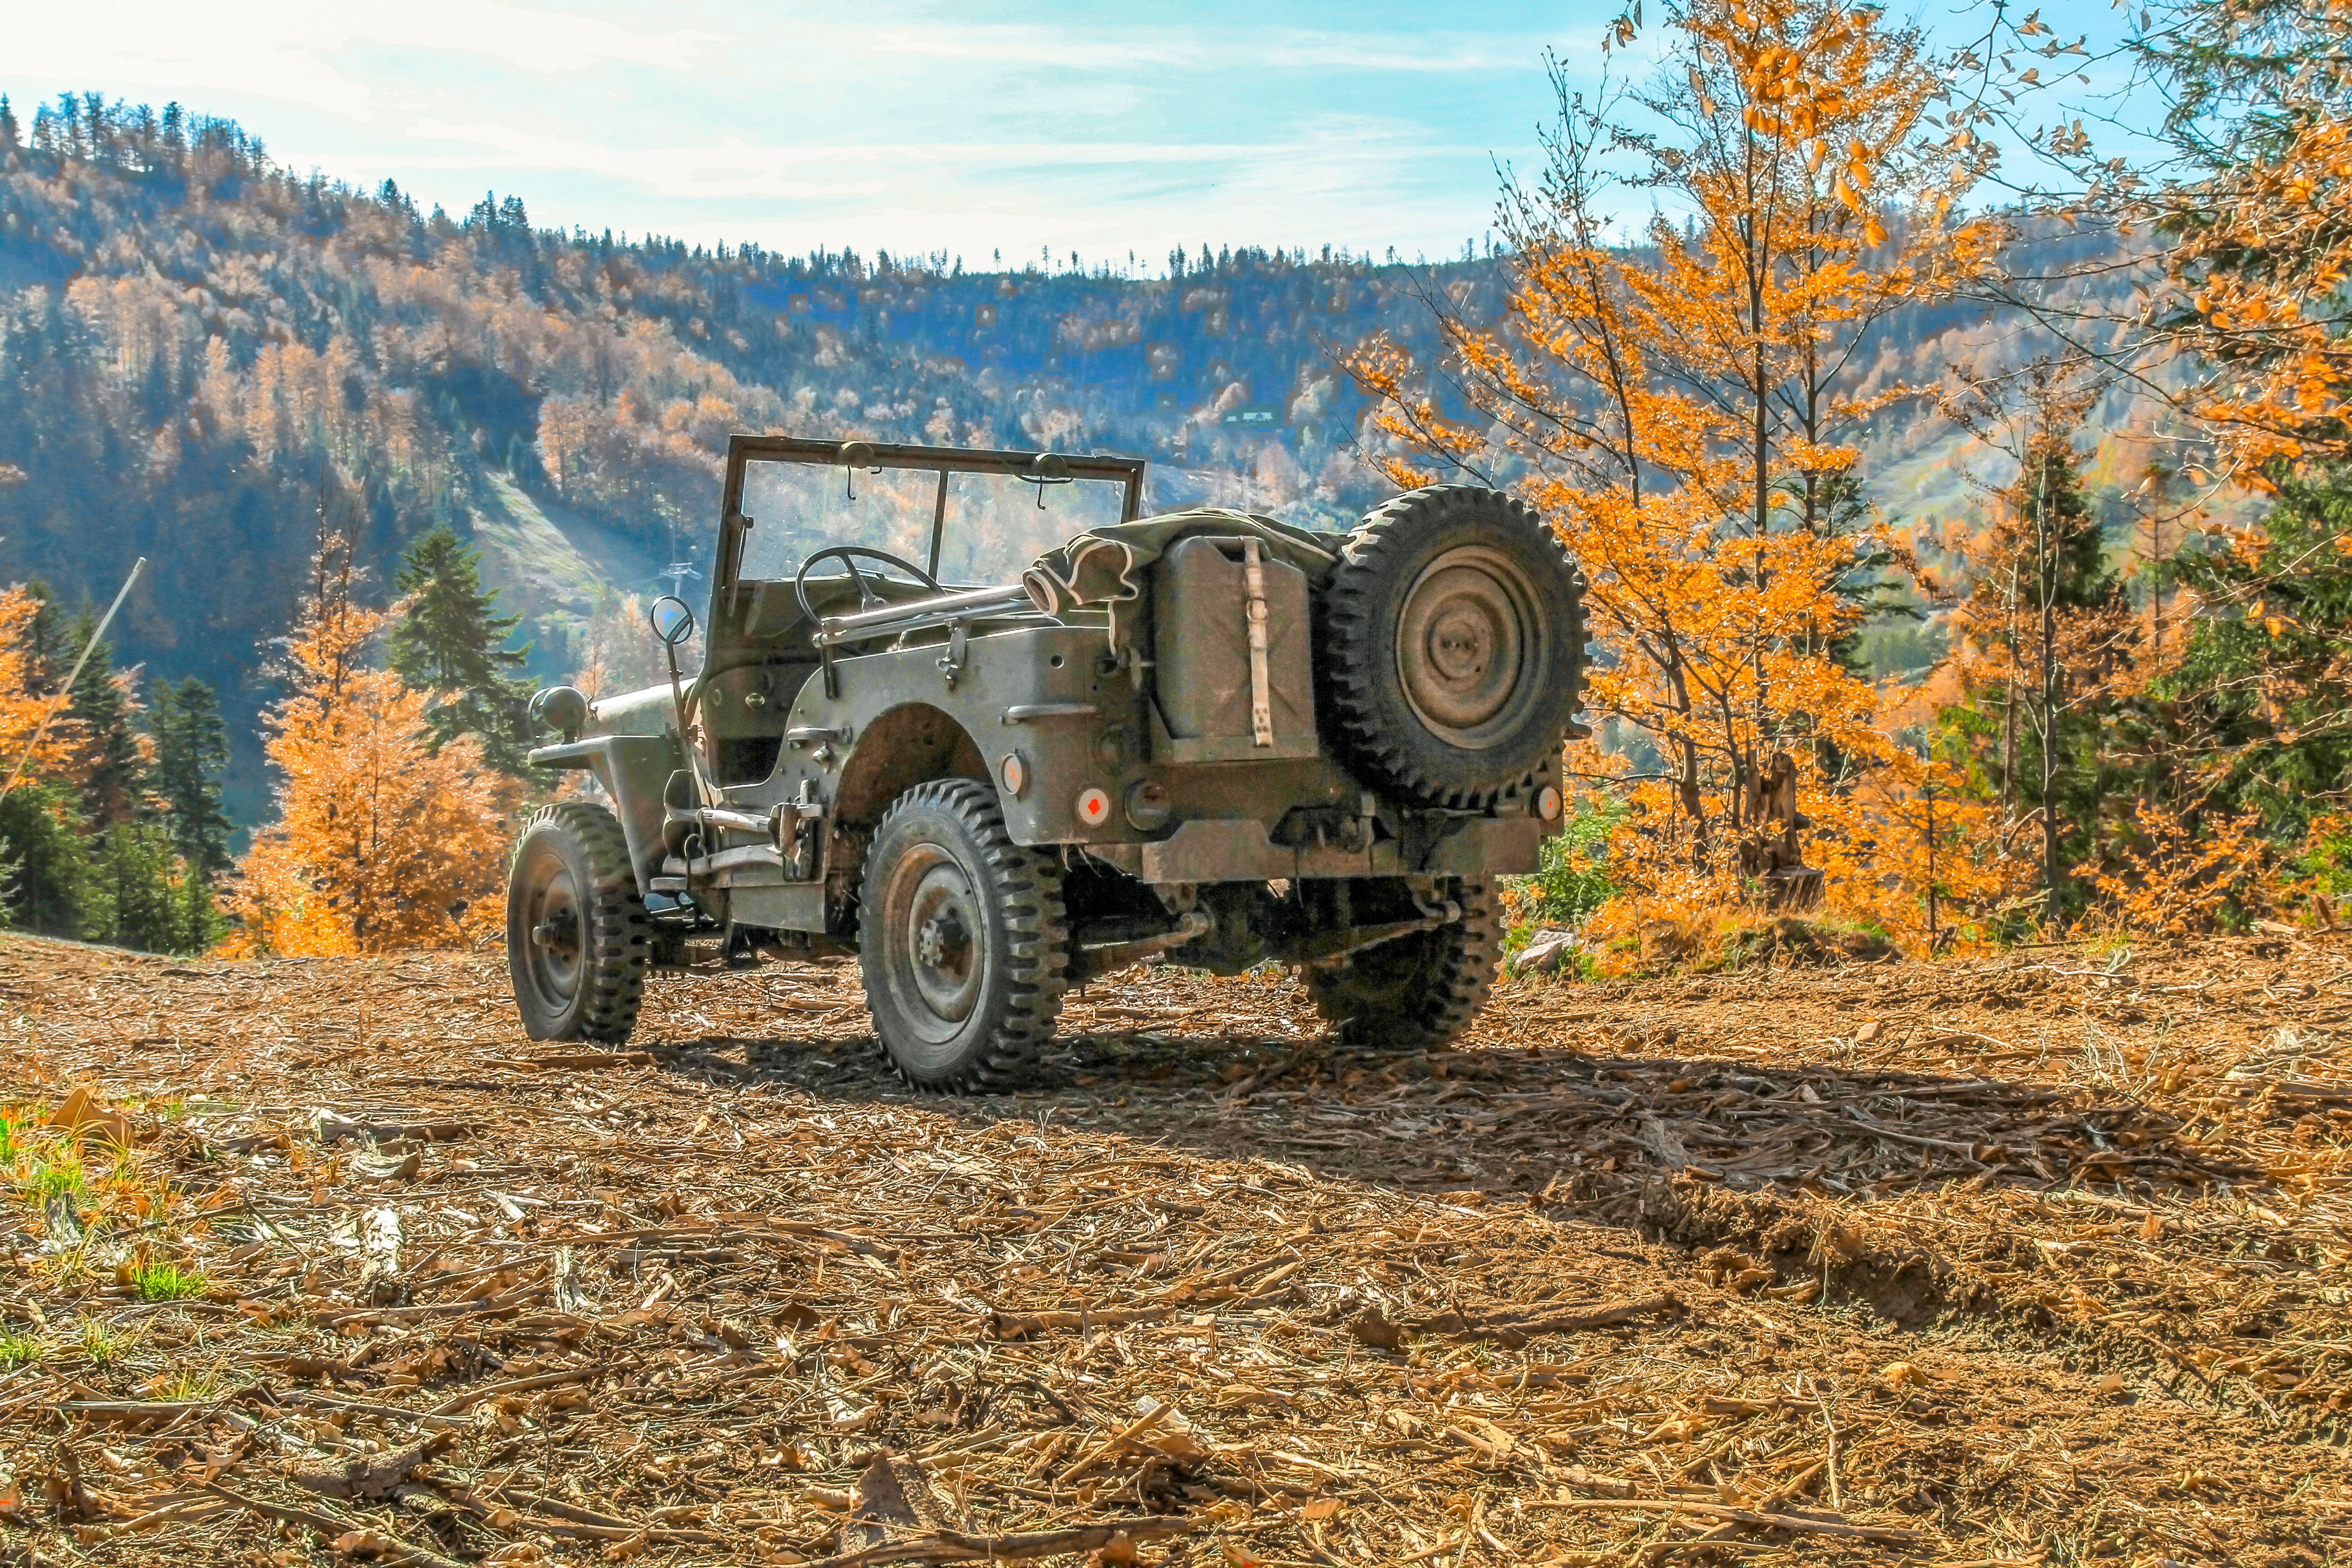 Classic Willys-Overland Jeep: The Built for Anything Classic Quad